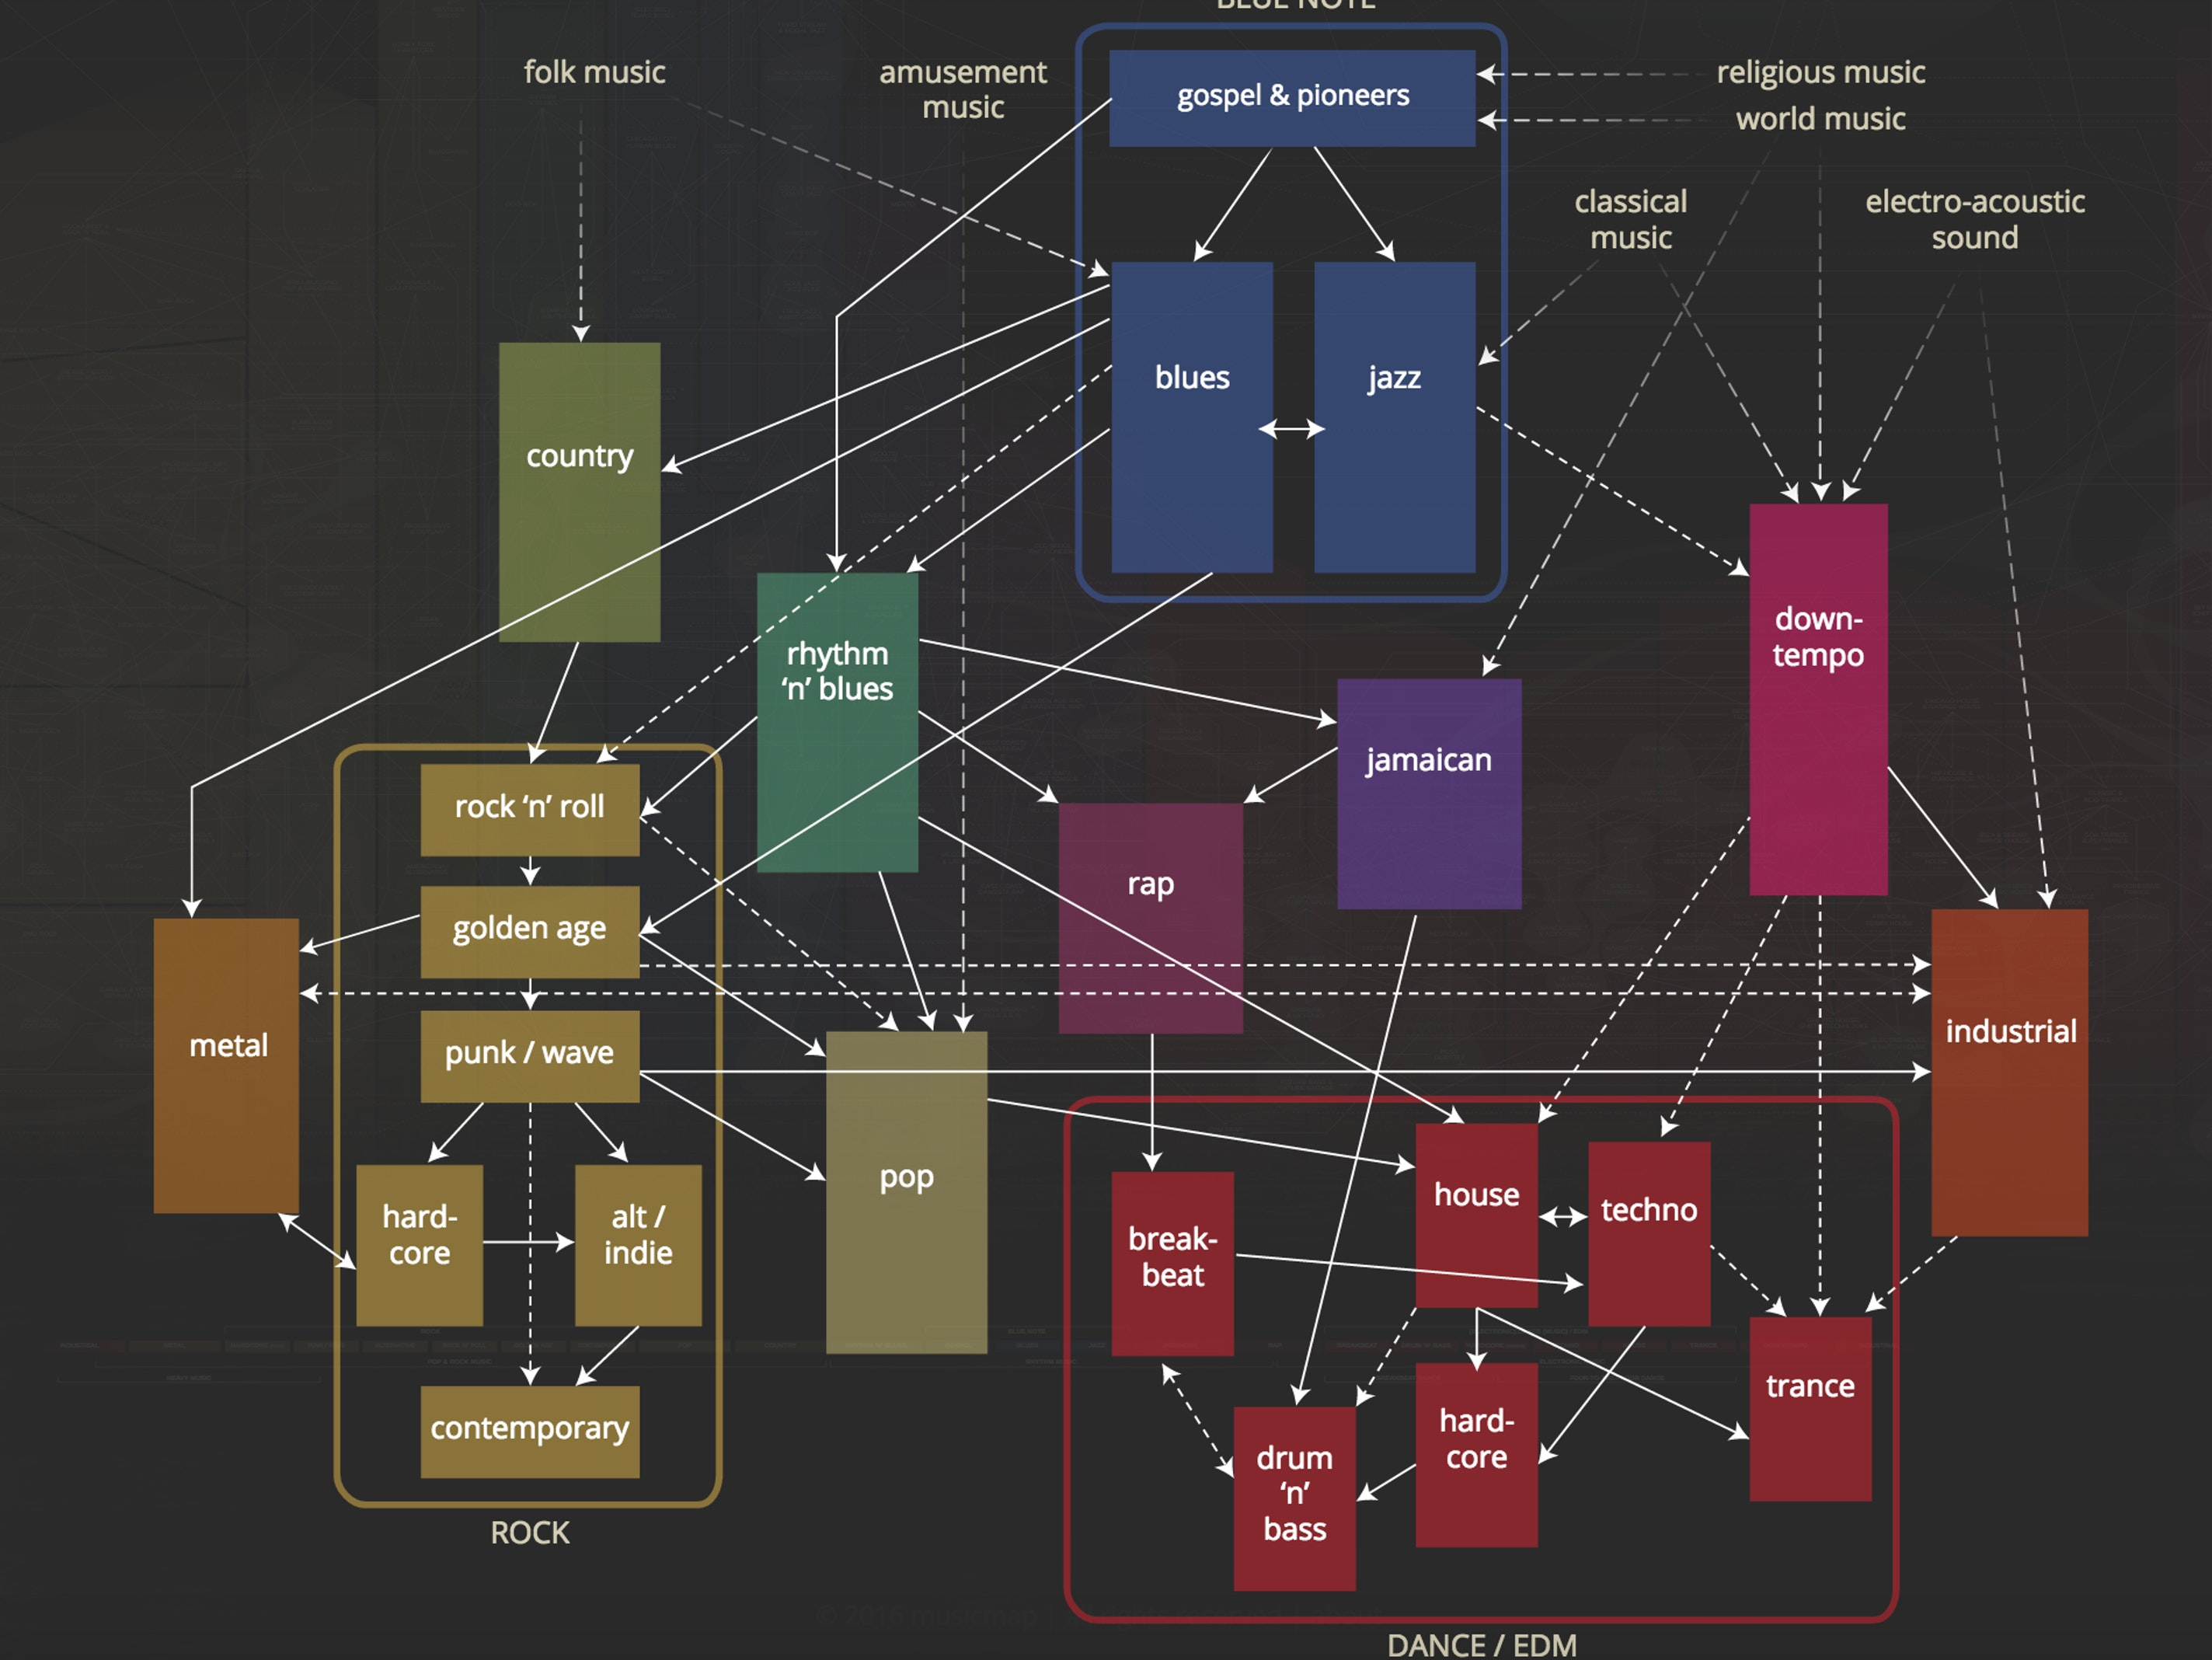 Musicmap is the Soulless Virtual Guide to Music Genres You Never Wanted